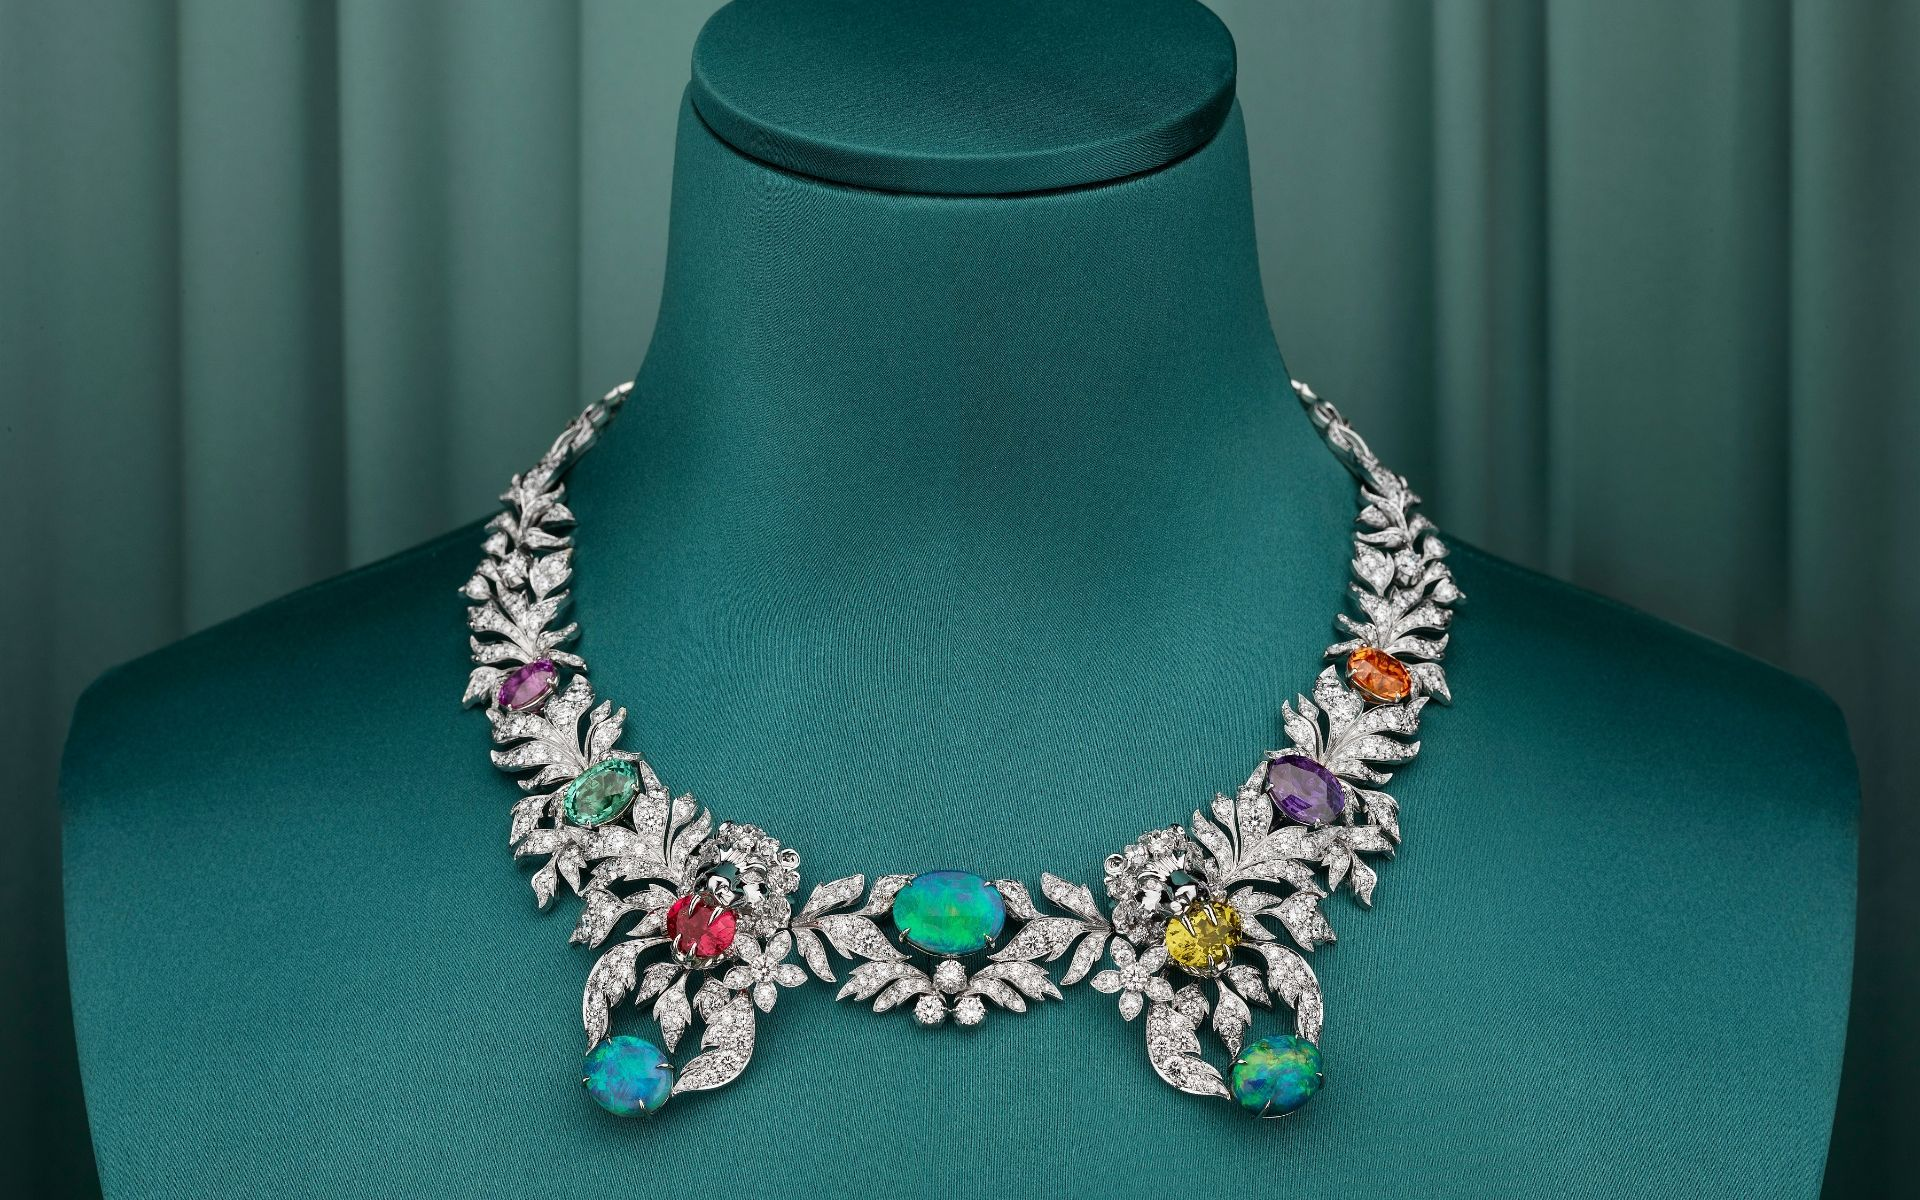 Gucci Debuts High Jewellery Collection, Hortus Deliciarum, At New Place Vendôme Boutique